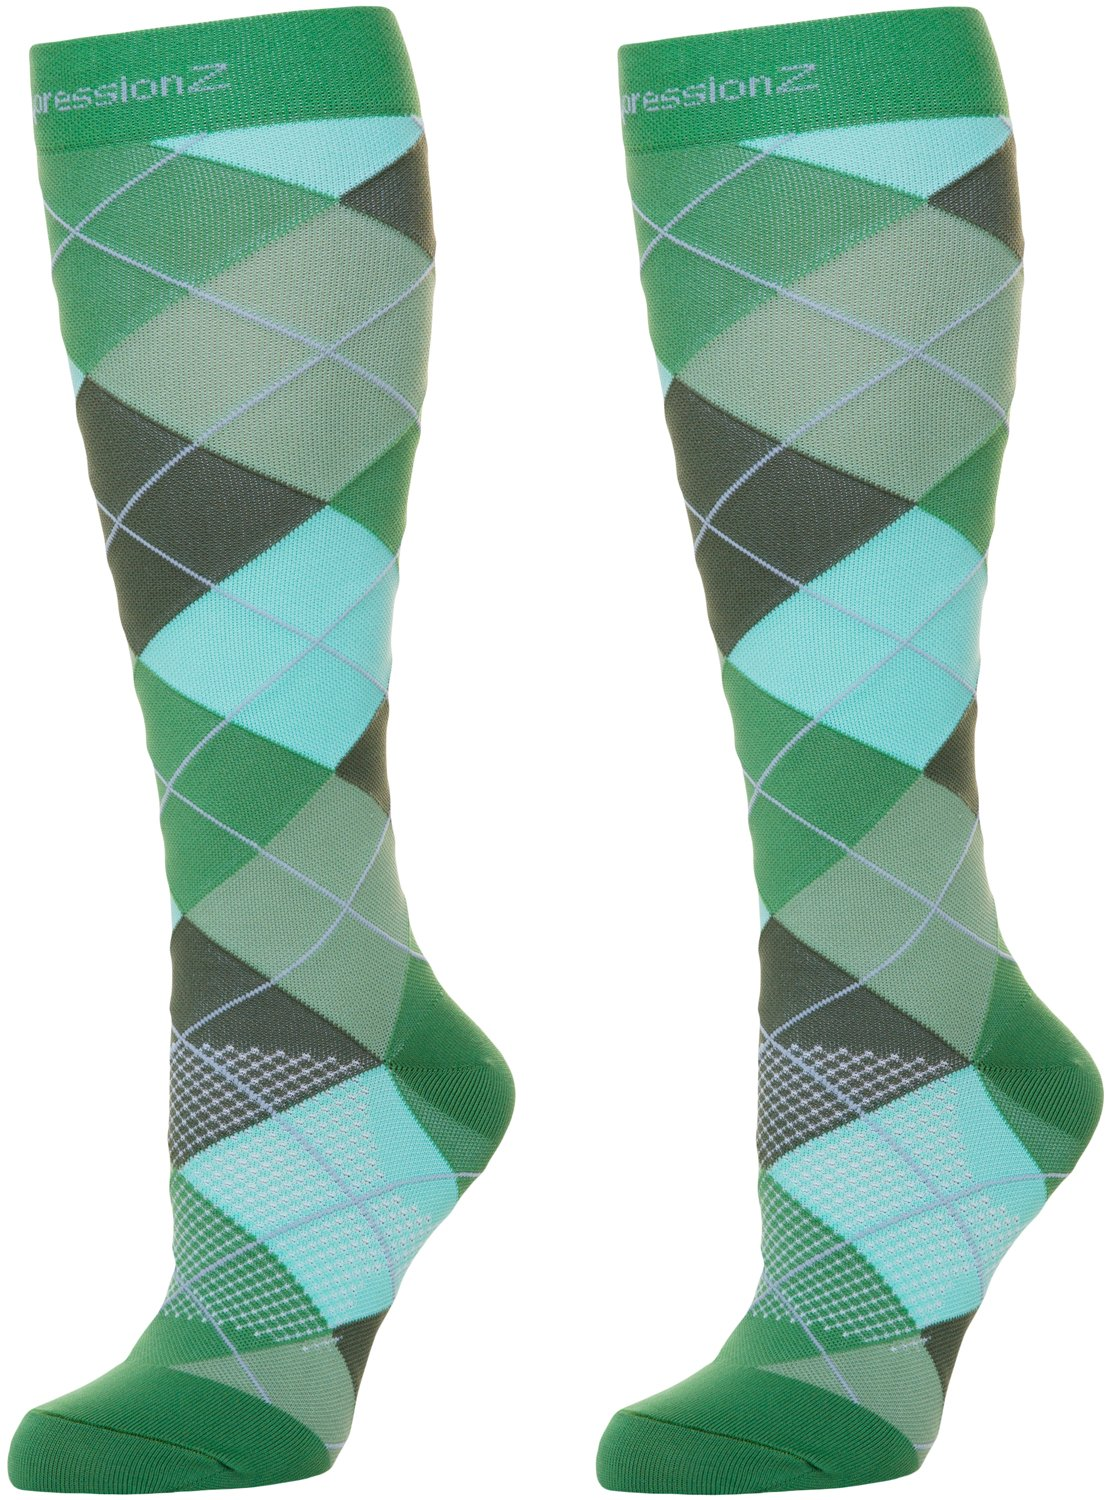 Argyle Green Large Compression Socks for Men & Women  3040 mmHg Graduated Compression  Medical Grade for Varicose Veins, Edema, Severe Swelling in Feet & Legs